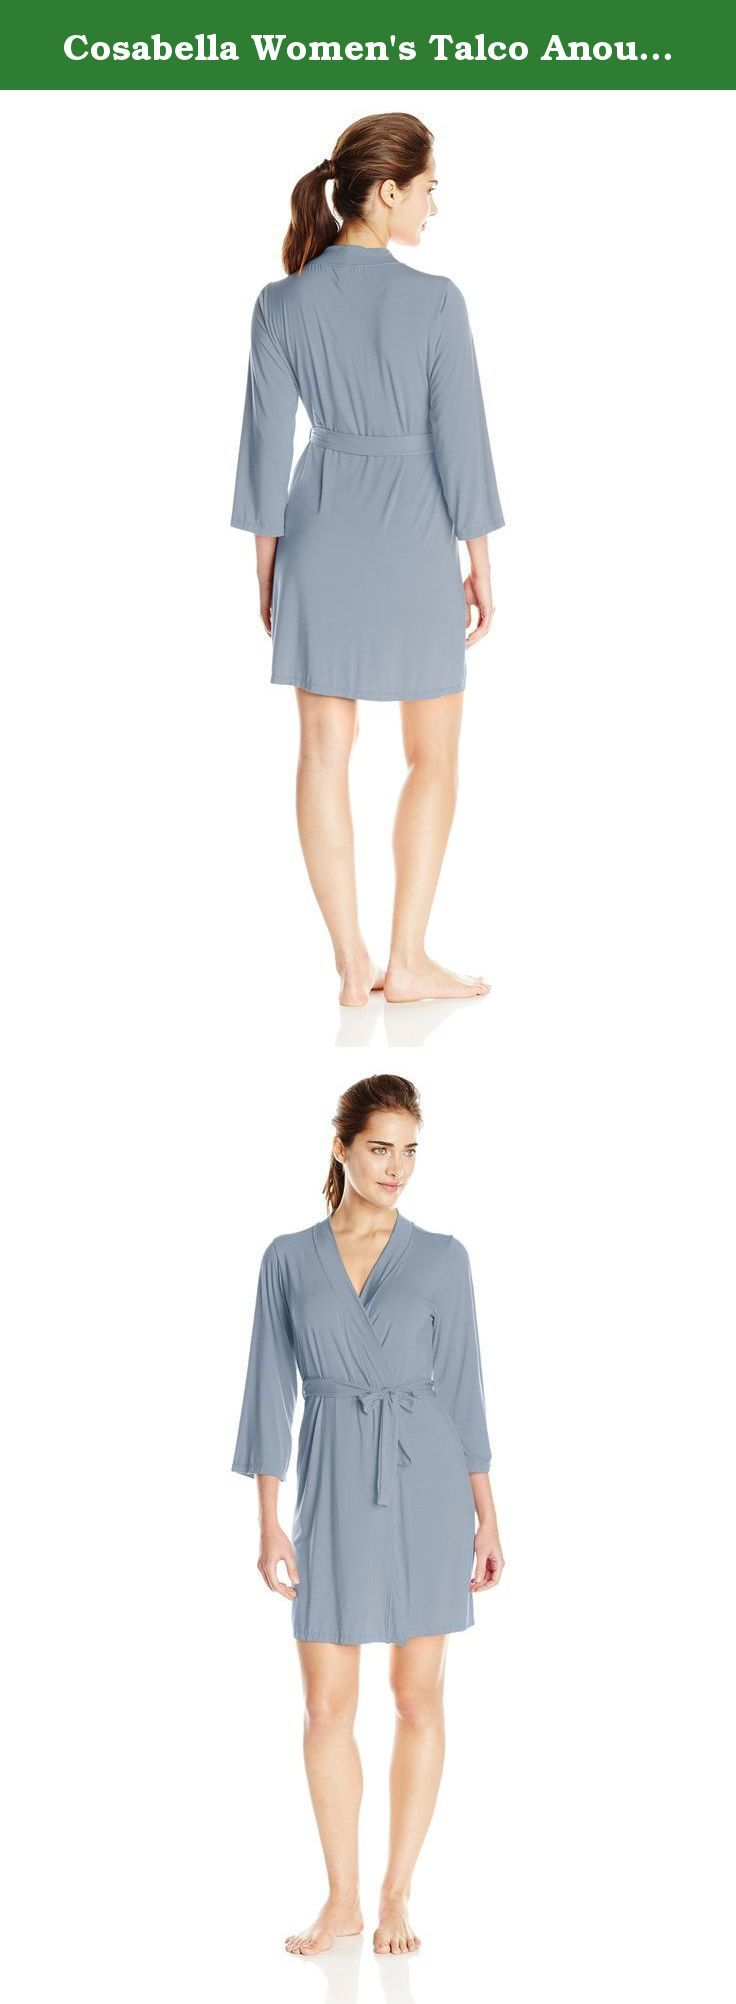 Cosabella Women's Talco Anouck Robe, Petra, Small. Designed in Cosabella's signature viscose, the versatile talco, has expanded into the yoga community thanks to its wear ability and breathability.